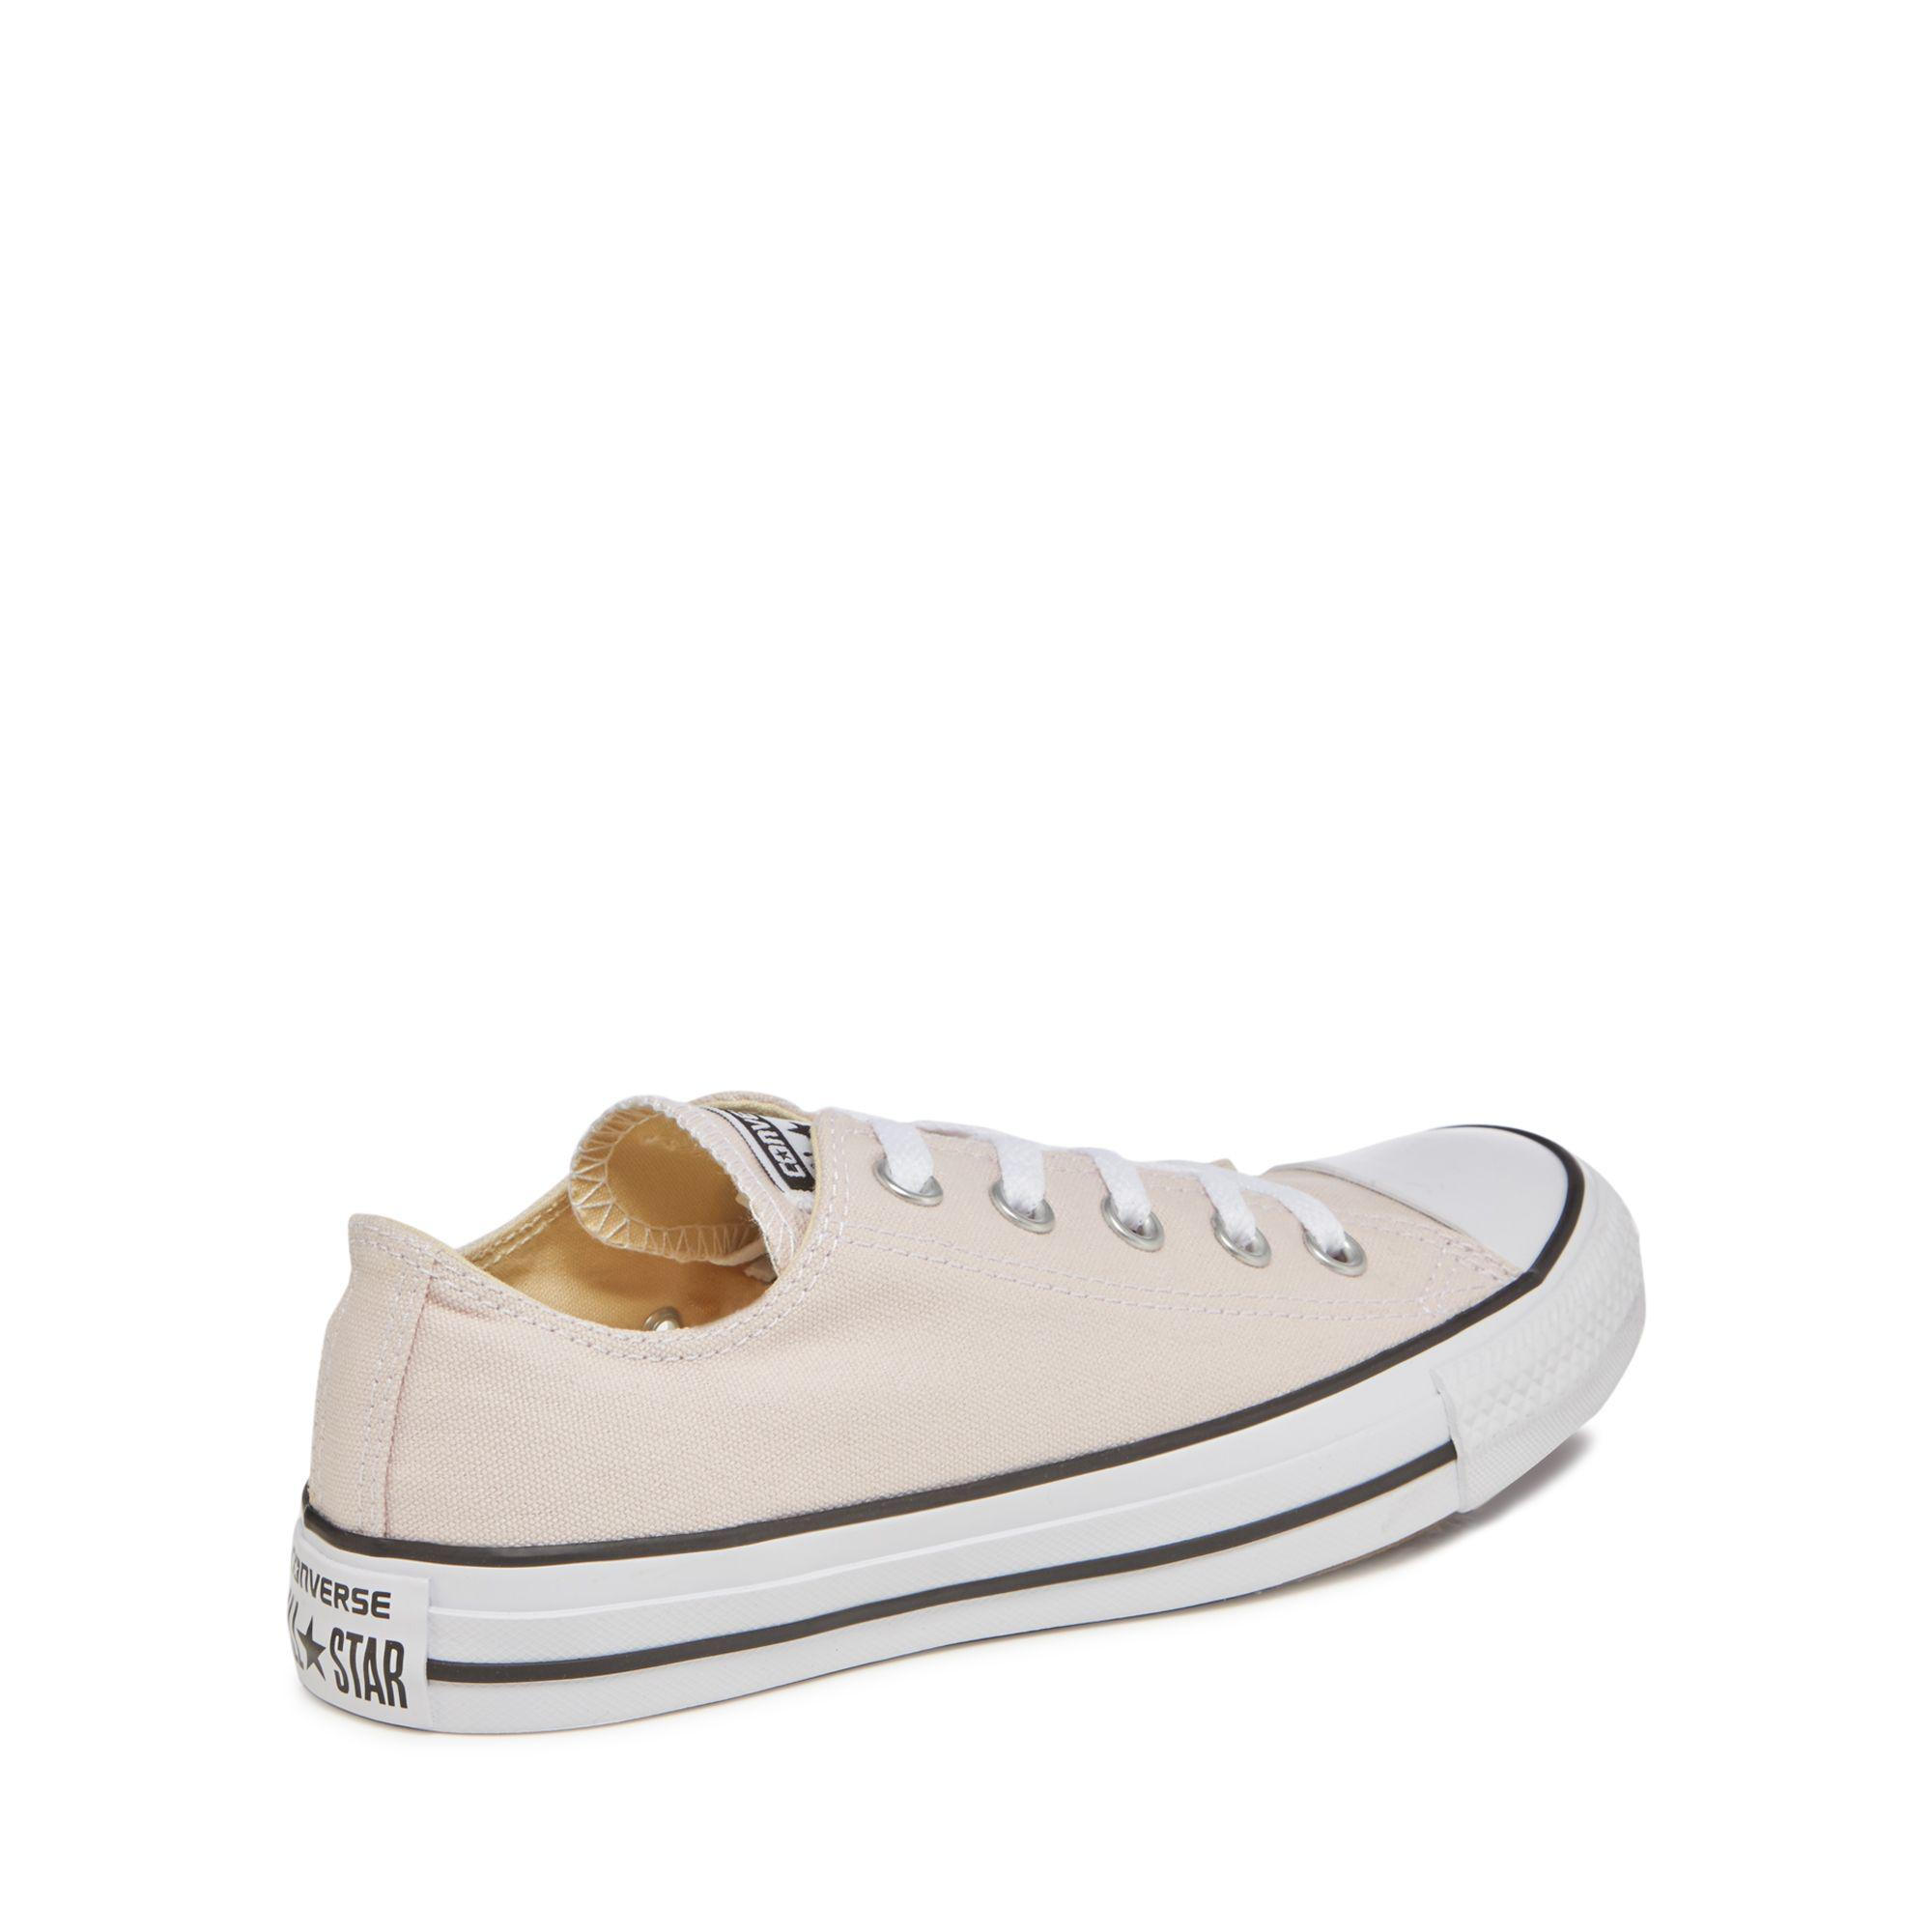 866015742a33 Converse - Light Pink Canvas  all Star Ox  Trainers - Lyst. View fullscreen